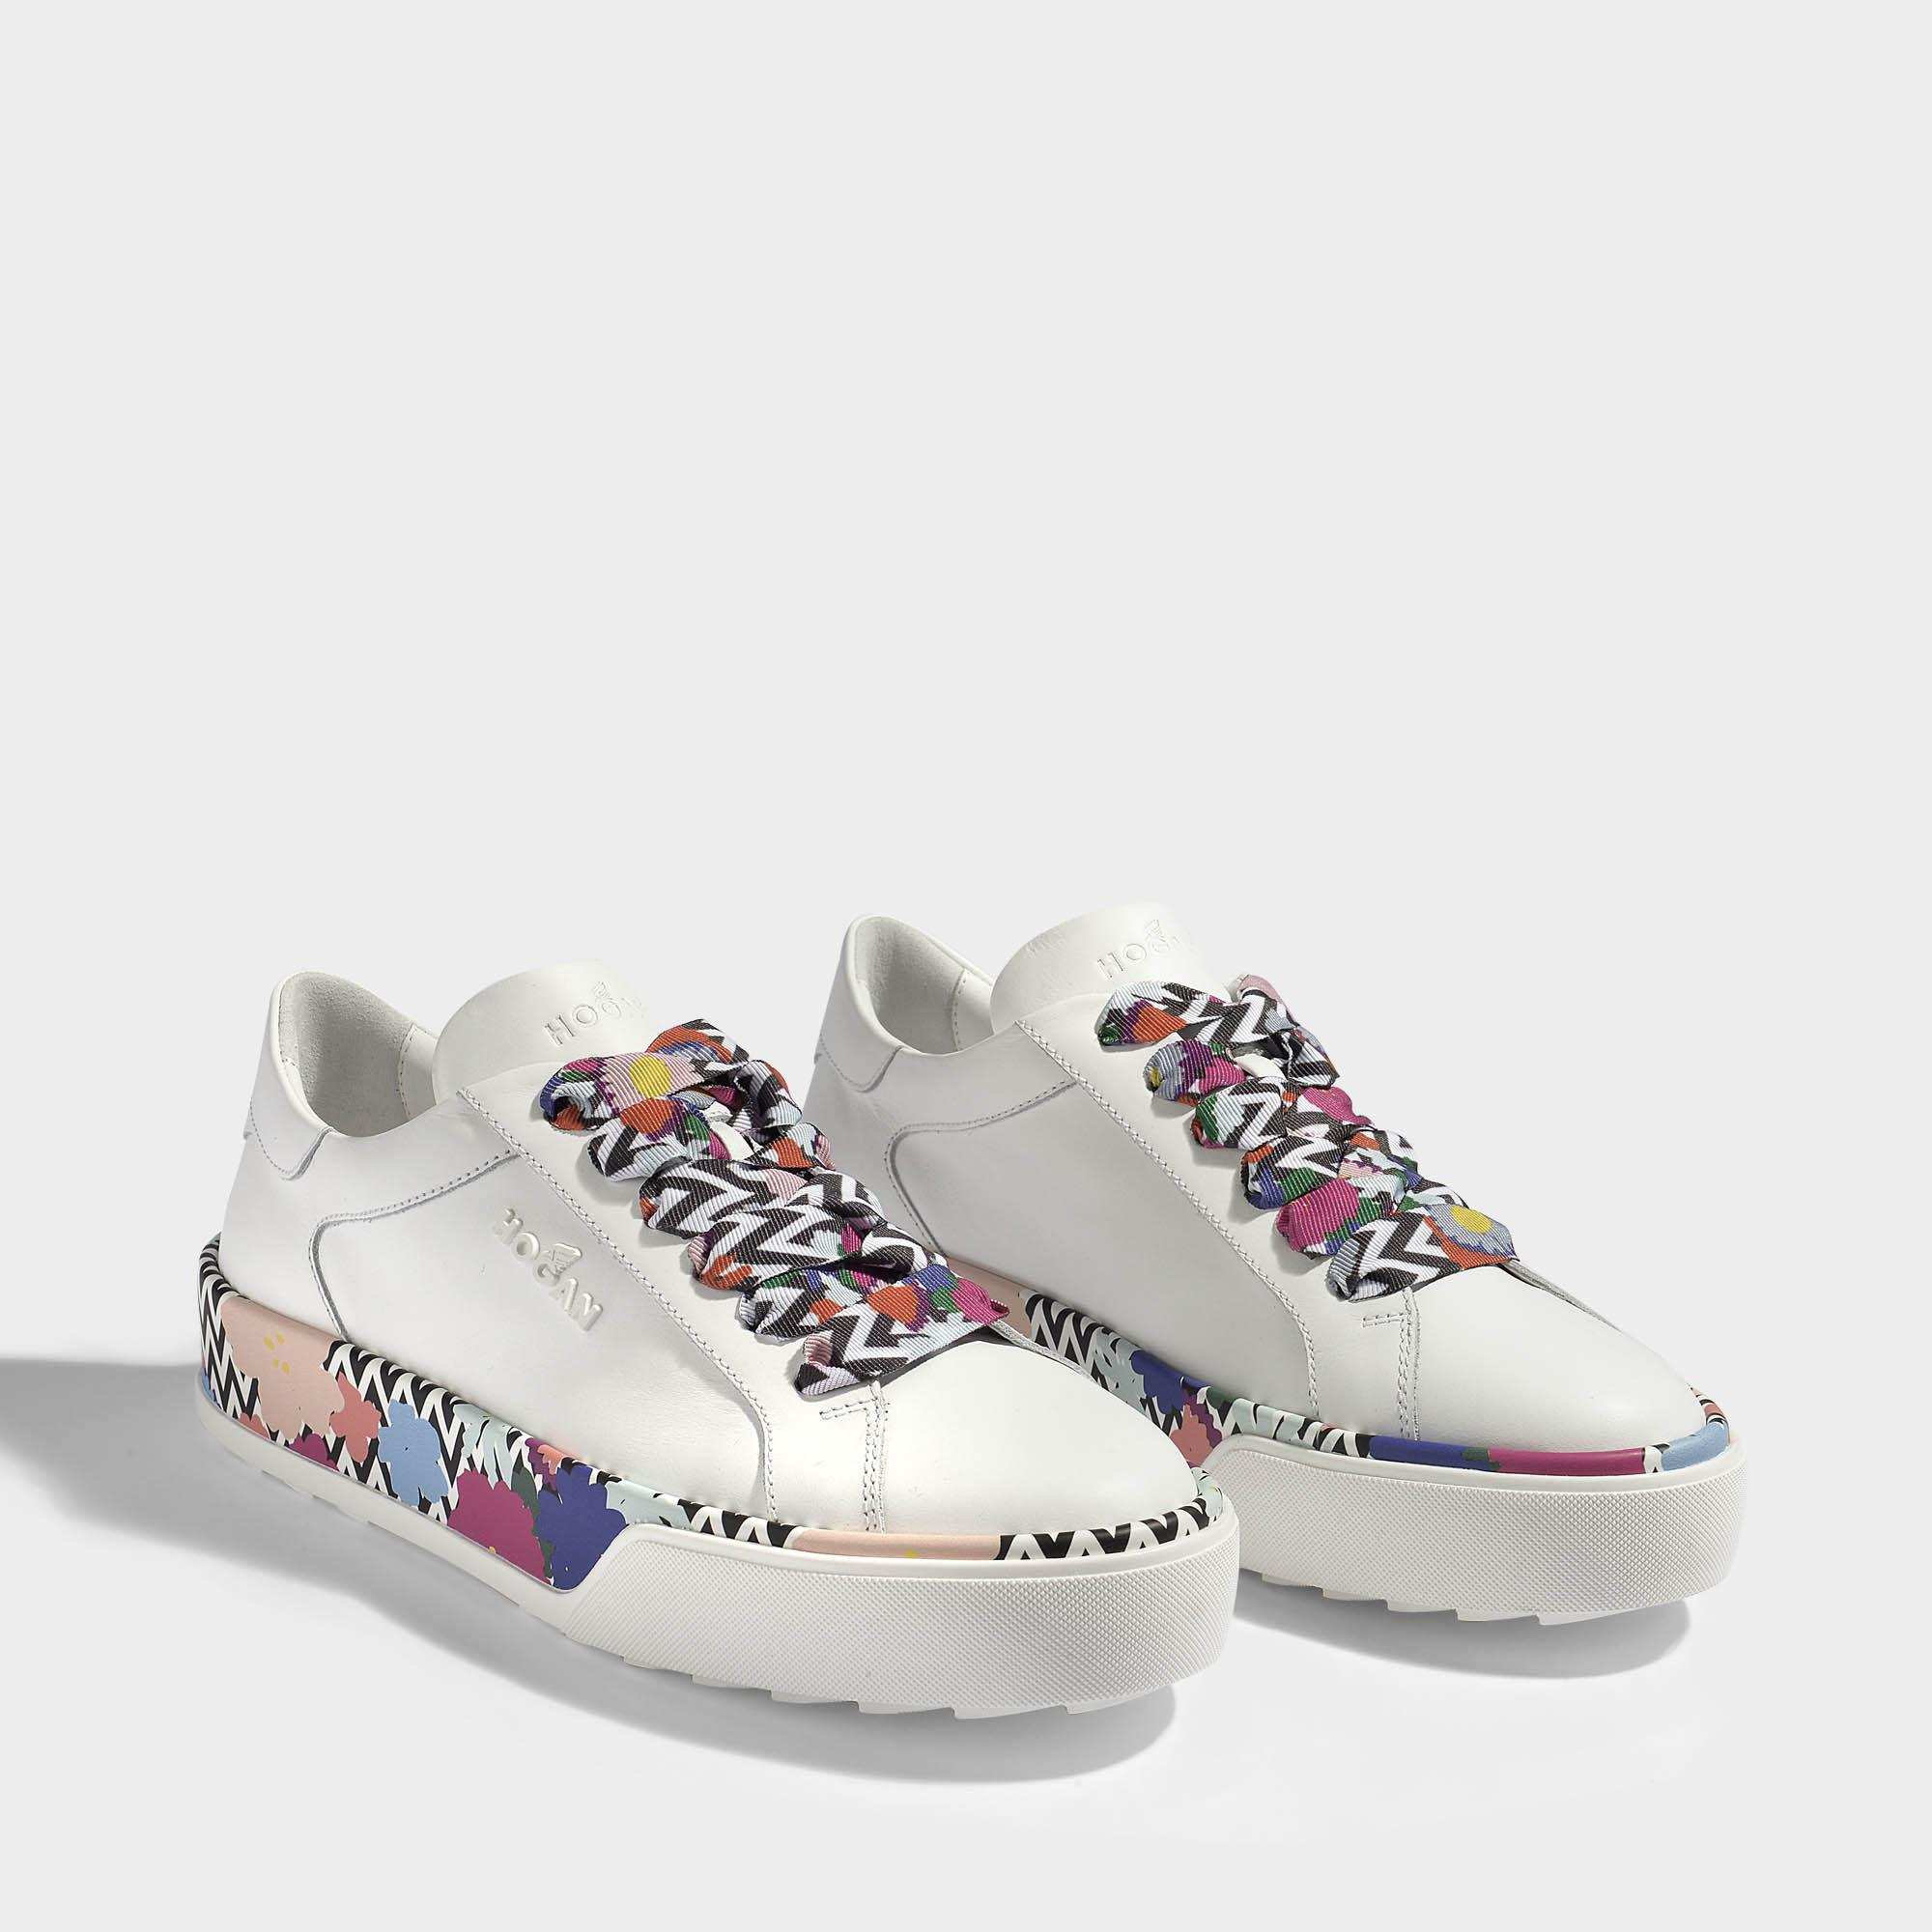 Clearance Really Sneakers H346 calfskin Flower pattern white Hogan Get Authentic Online Outlet Cheap Prices Free Shipping 2018 Unisex zlwOId0wG